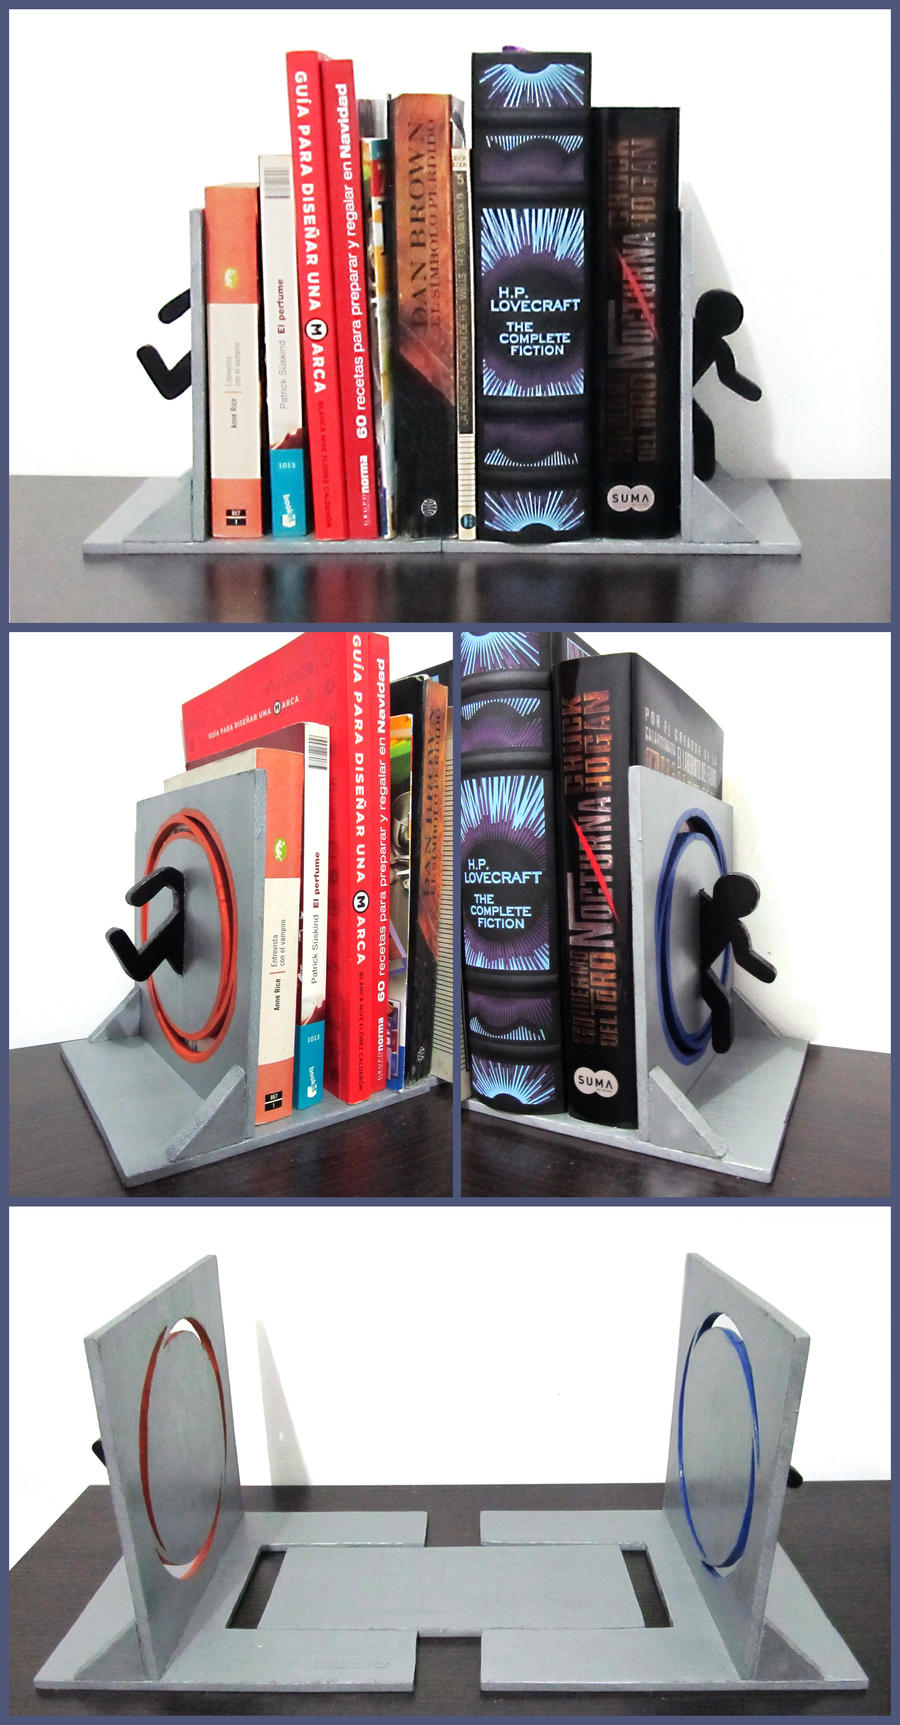 Nerdcrafting pictures post them here geek sundry community forums - Portal book ends ...